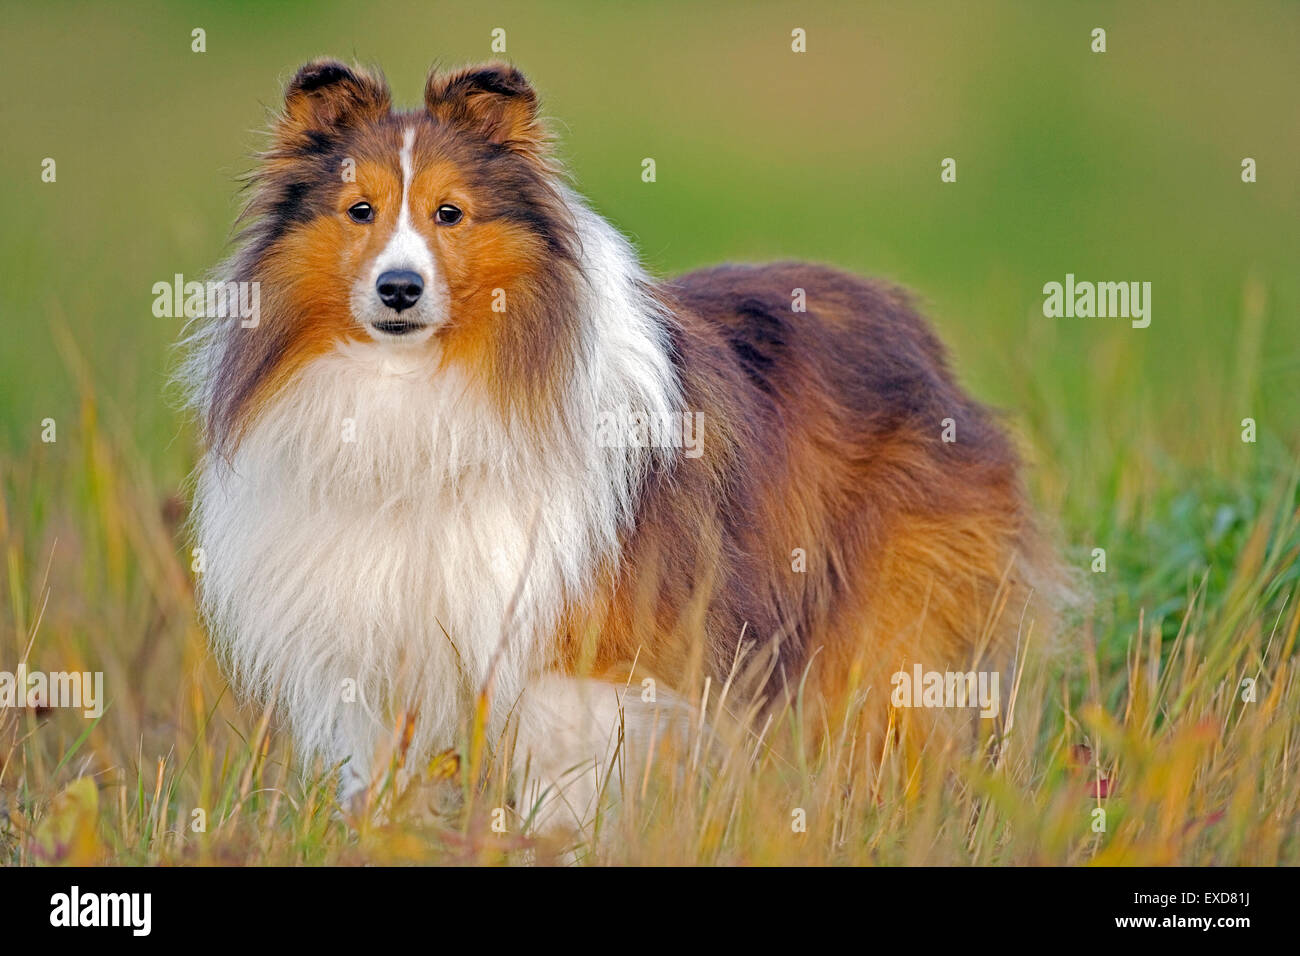 Shetland Sheepdog standing in meadow, autumn - Stock Image